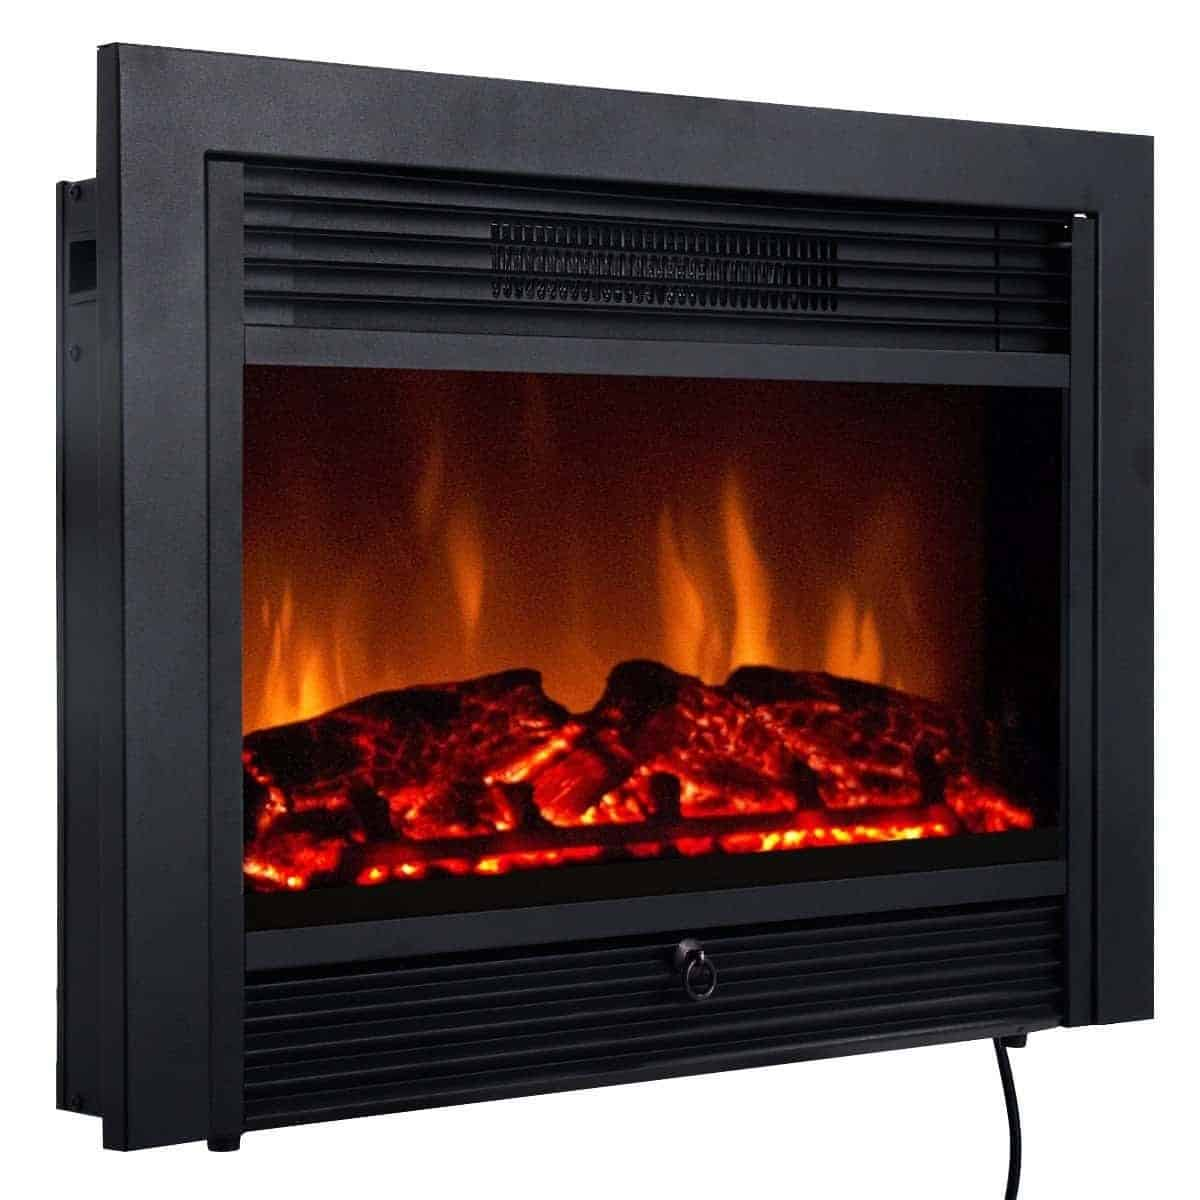 "Giantex 28.5"" Electric Fireplace Insert with Heater Glass View Log Flame"